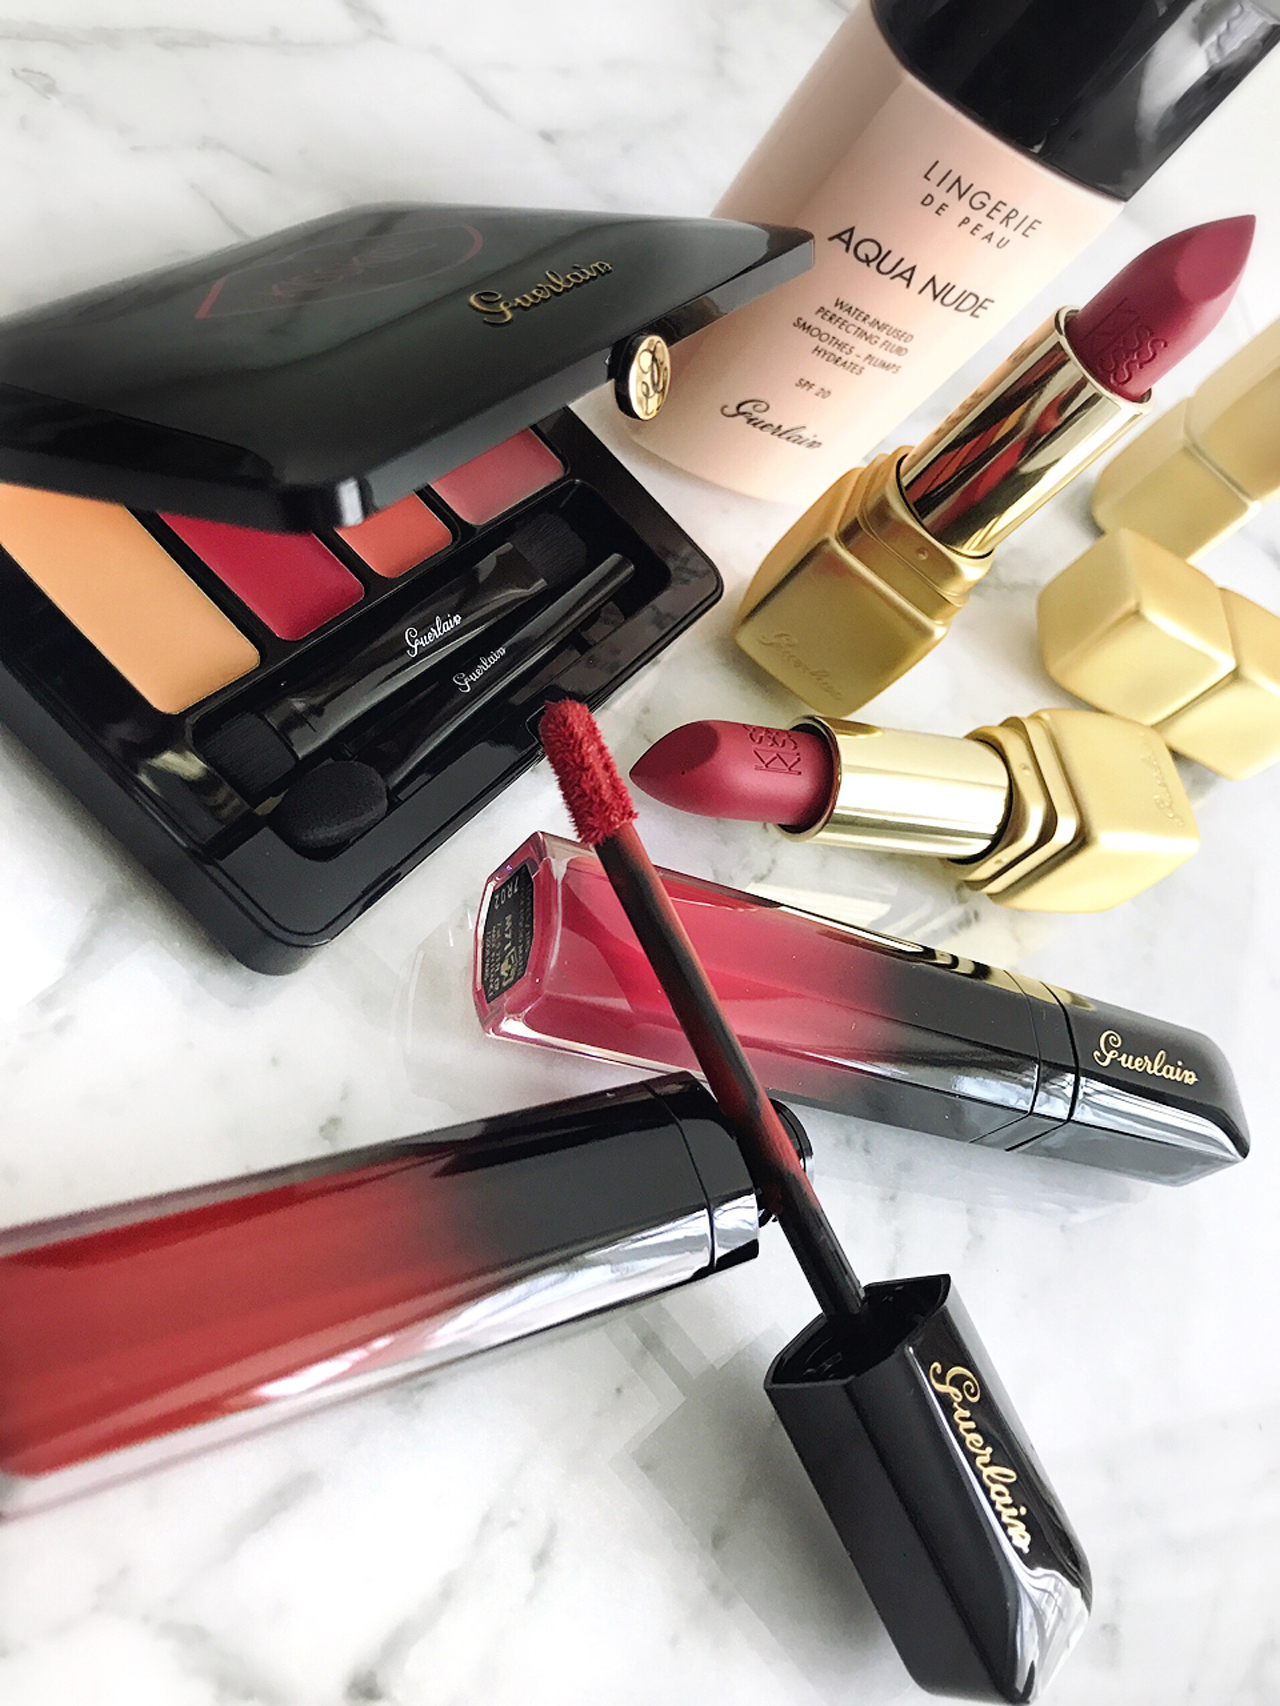 Guerlain Kiss Kiss Matte Lipstick and Intense Liquid Matte Lipstick